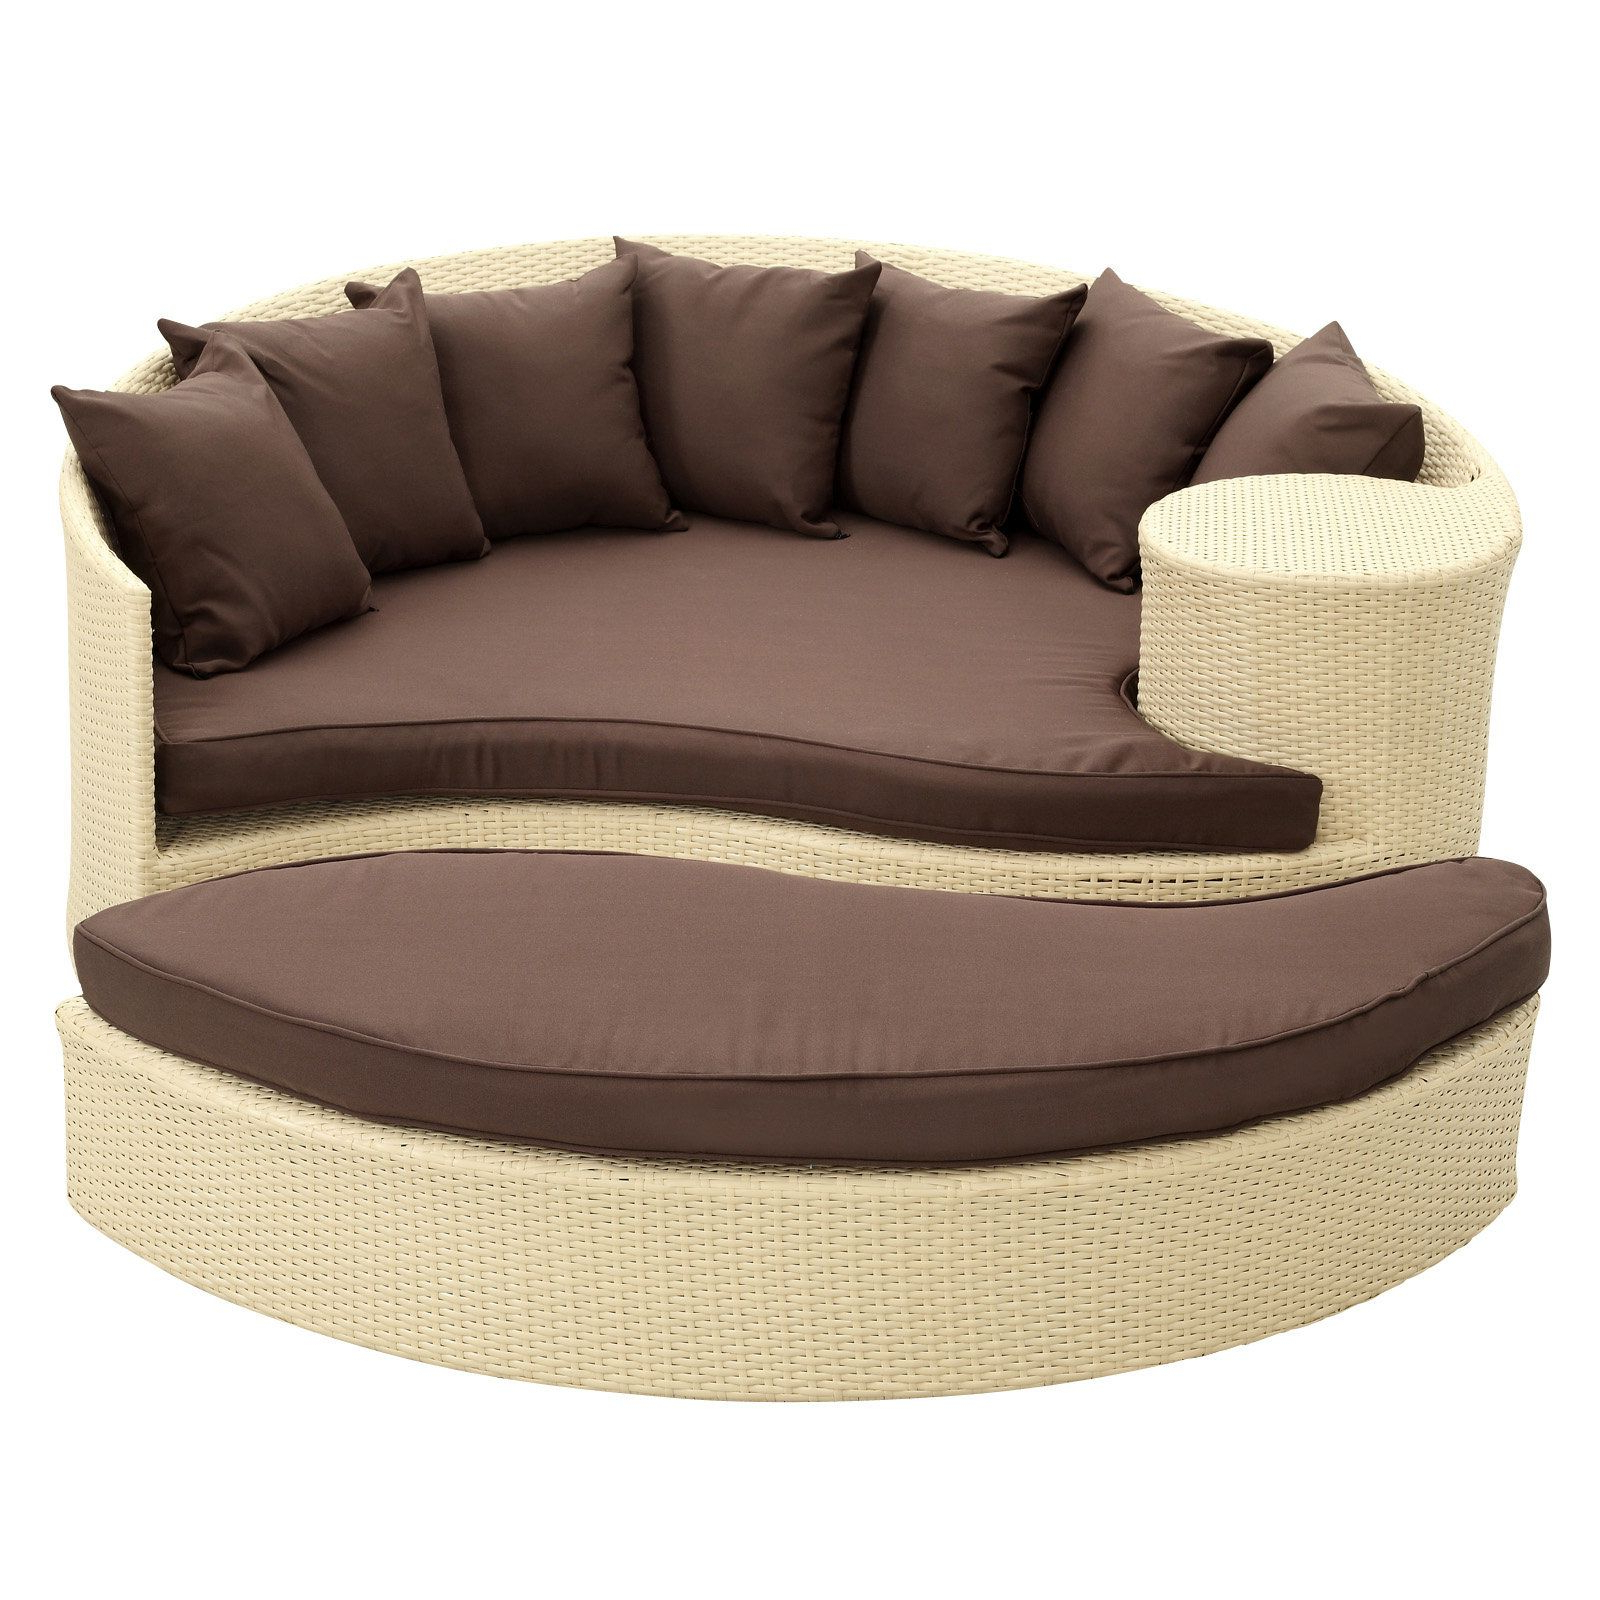 Greening Outdoor Daybeds With Ottoman & Cushions Within Preferred Brentwood Daybed With Cushions (View 8 of 20)